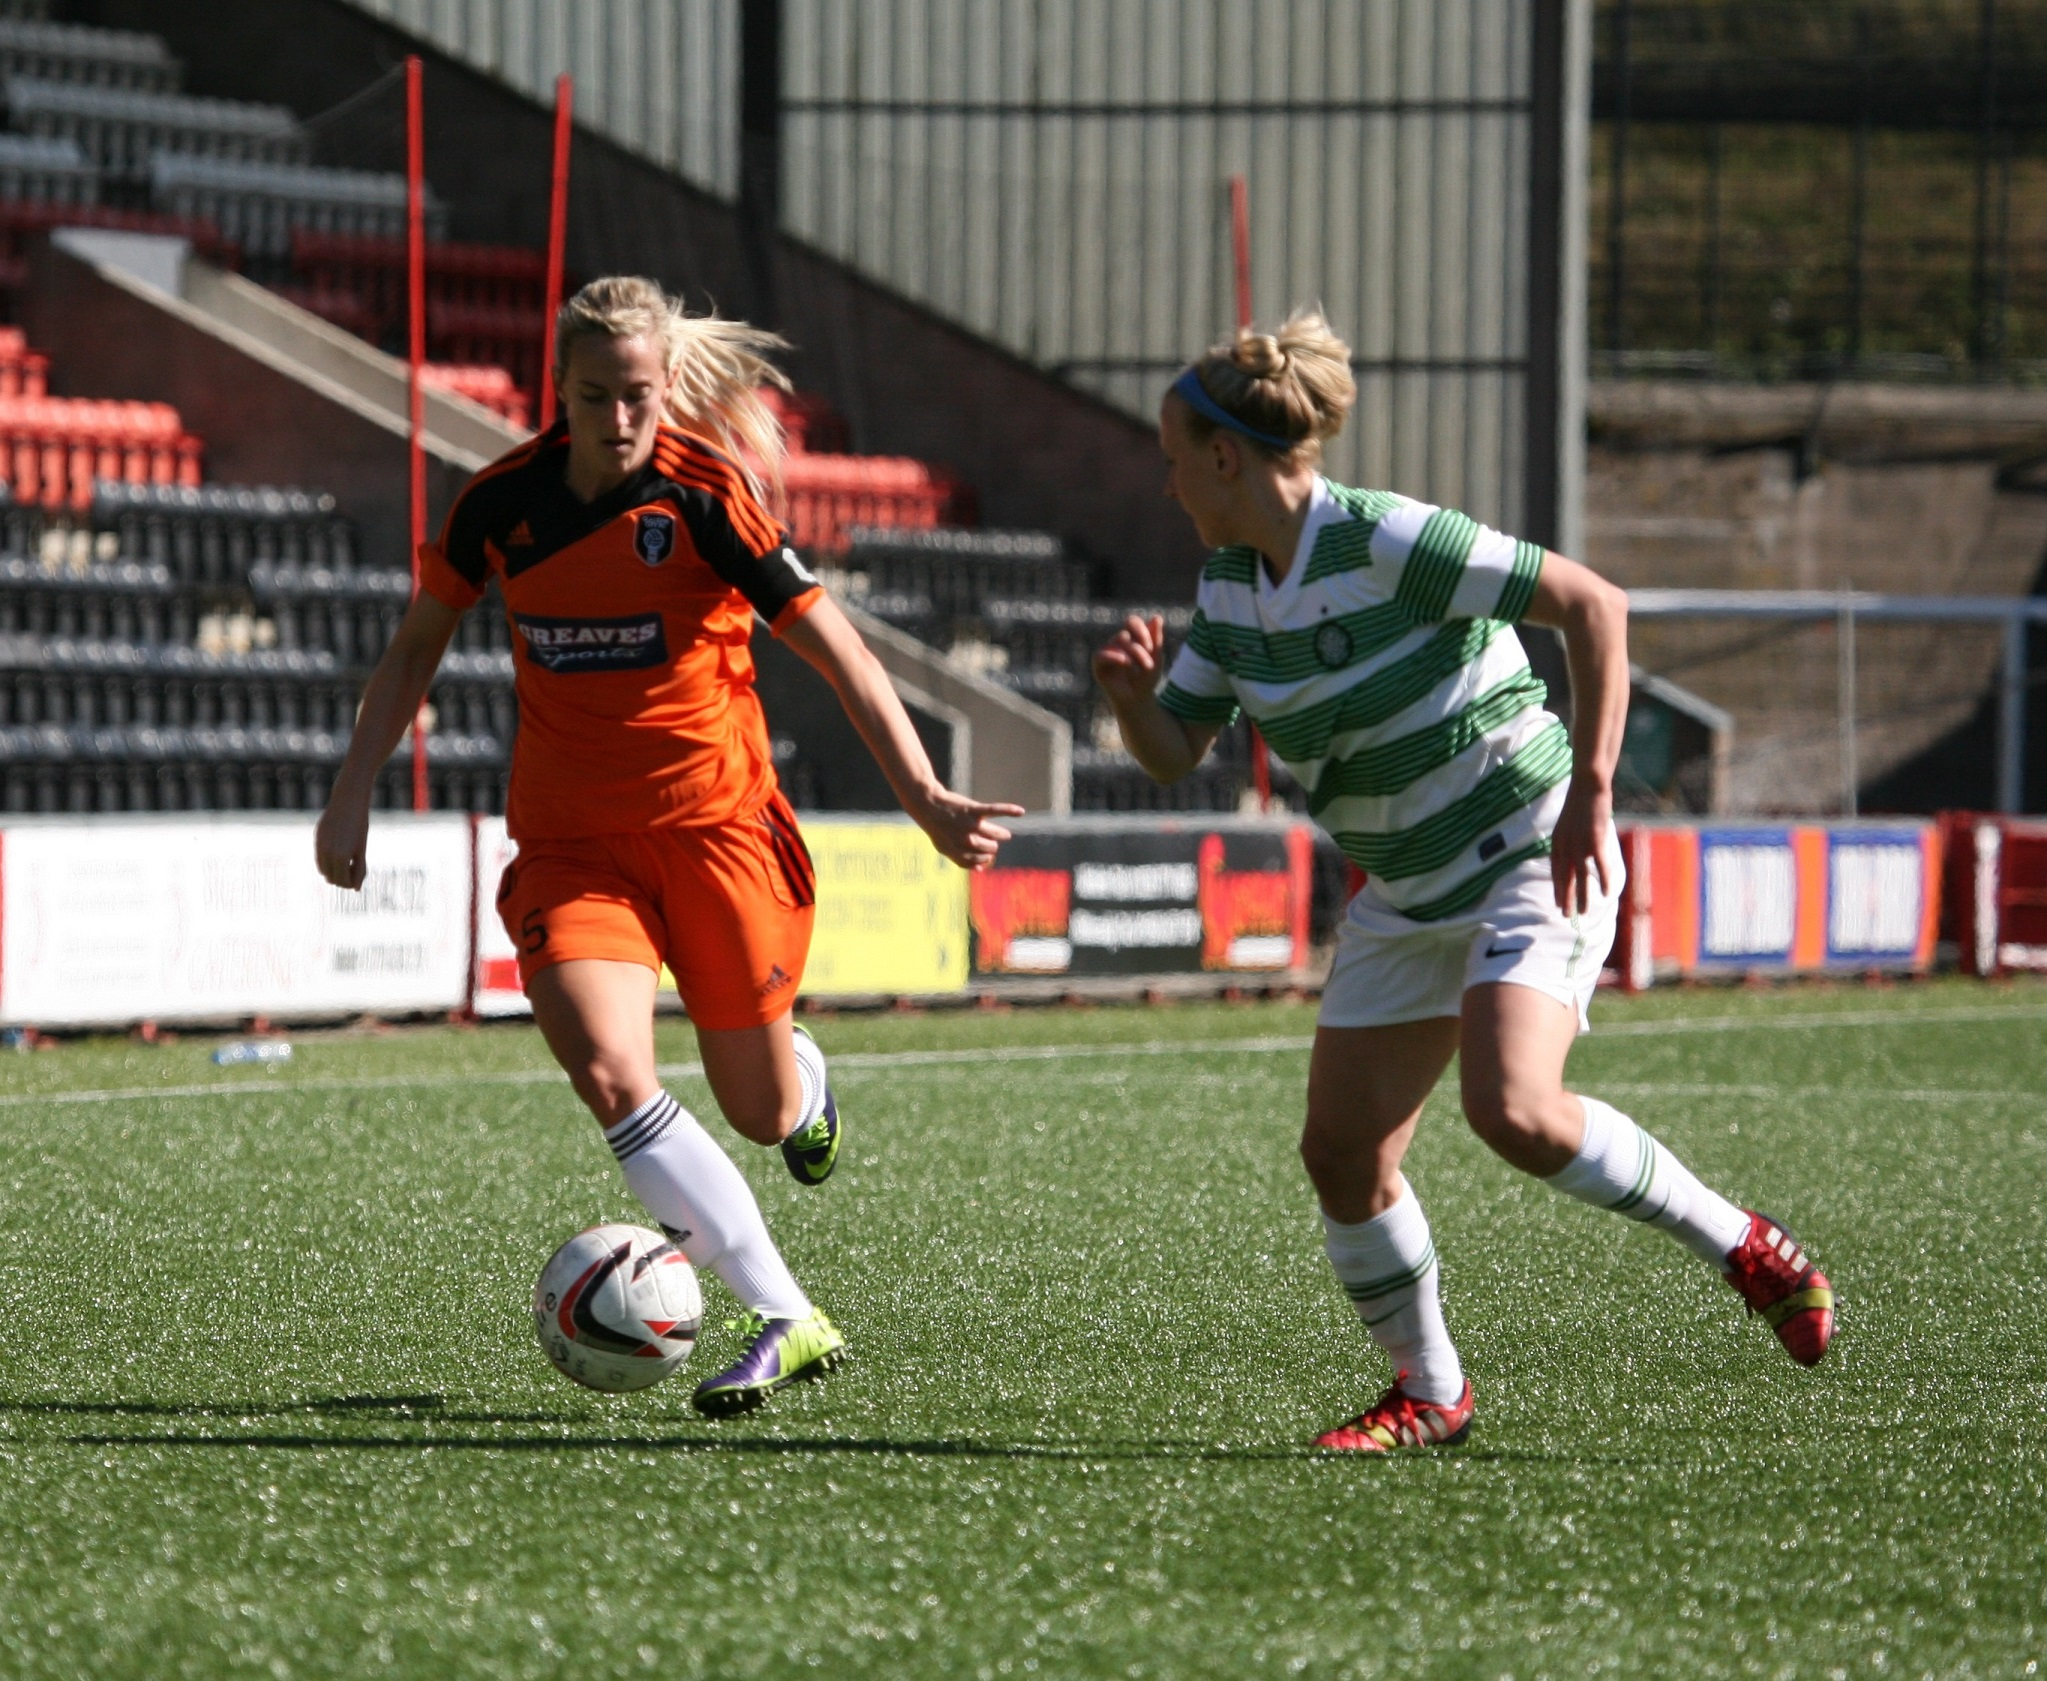 Emma Black on the attack for City. Image by Andy Buist